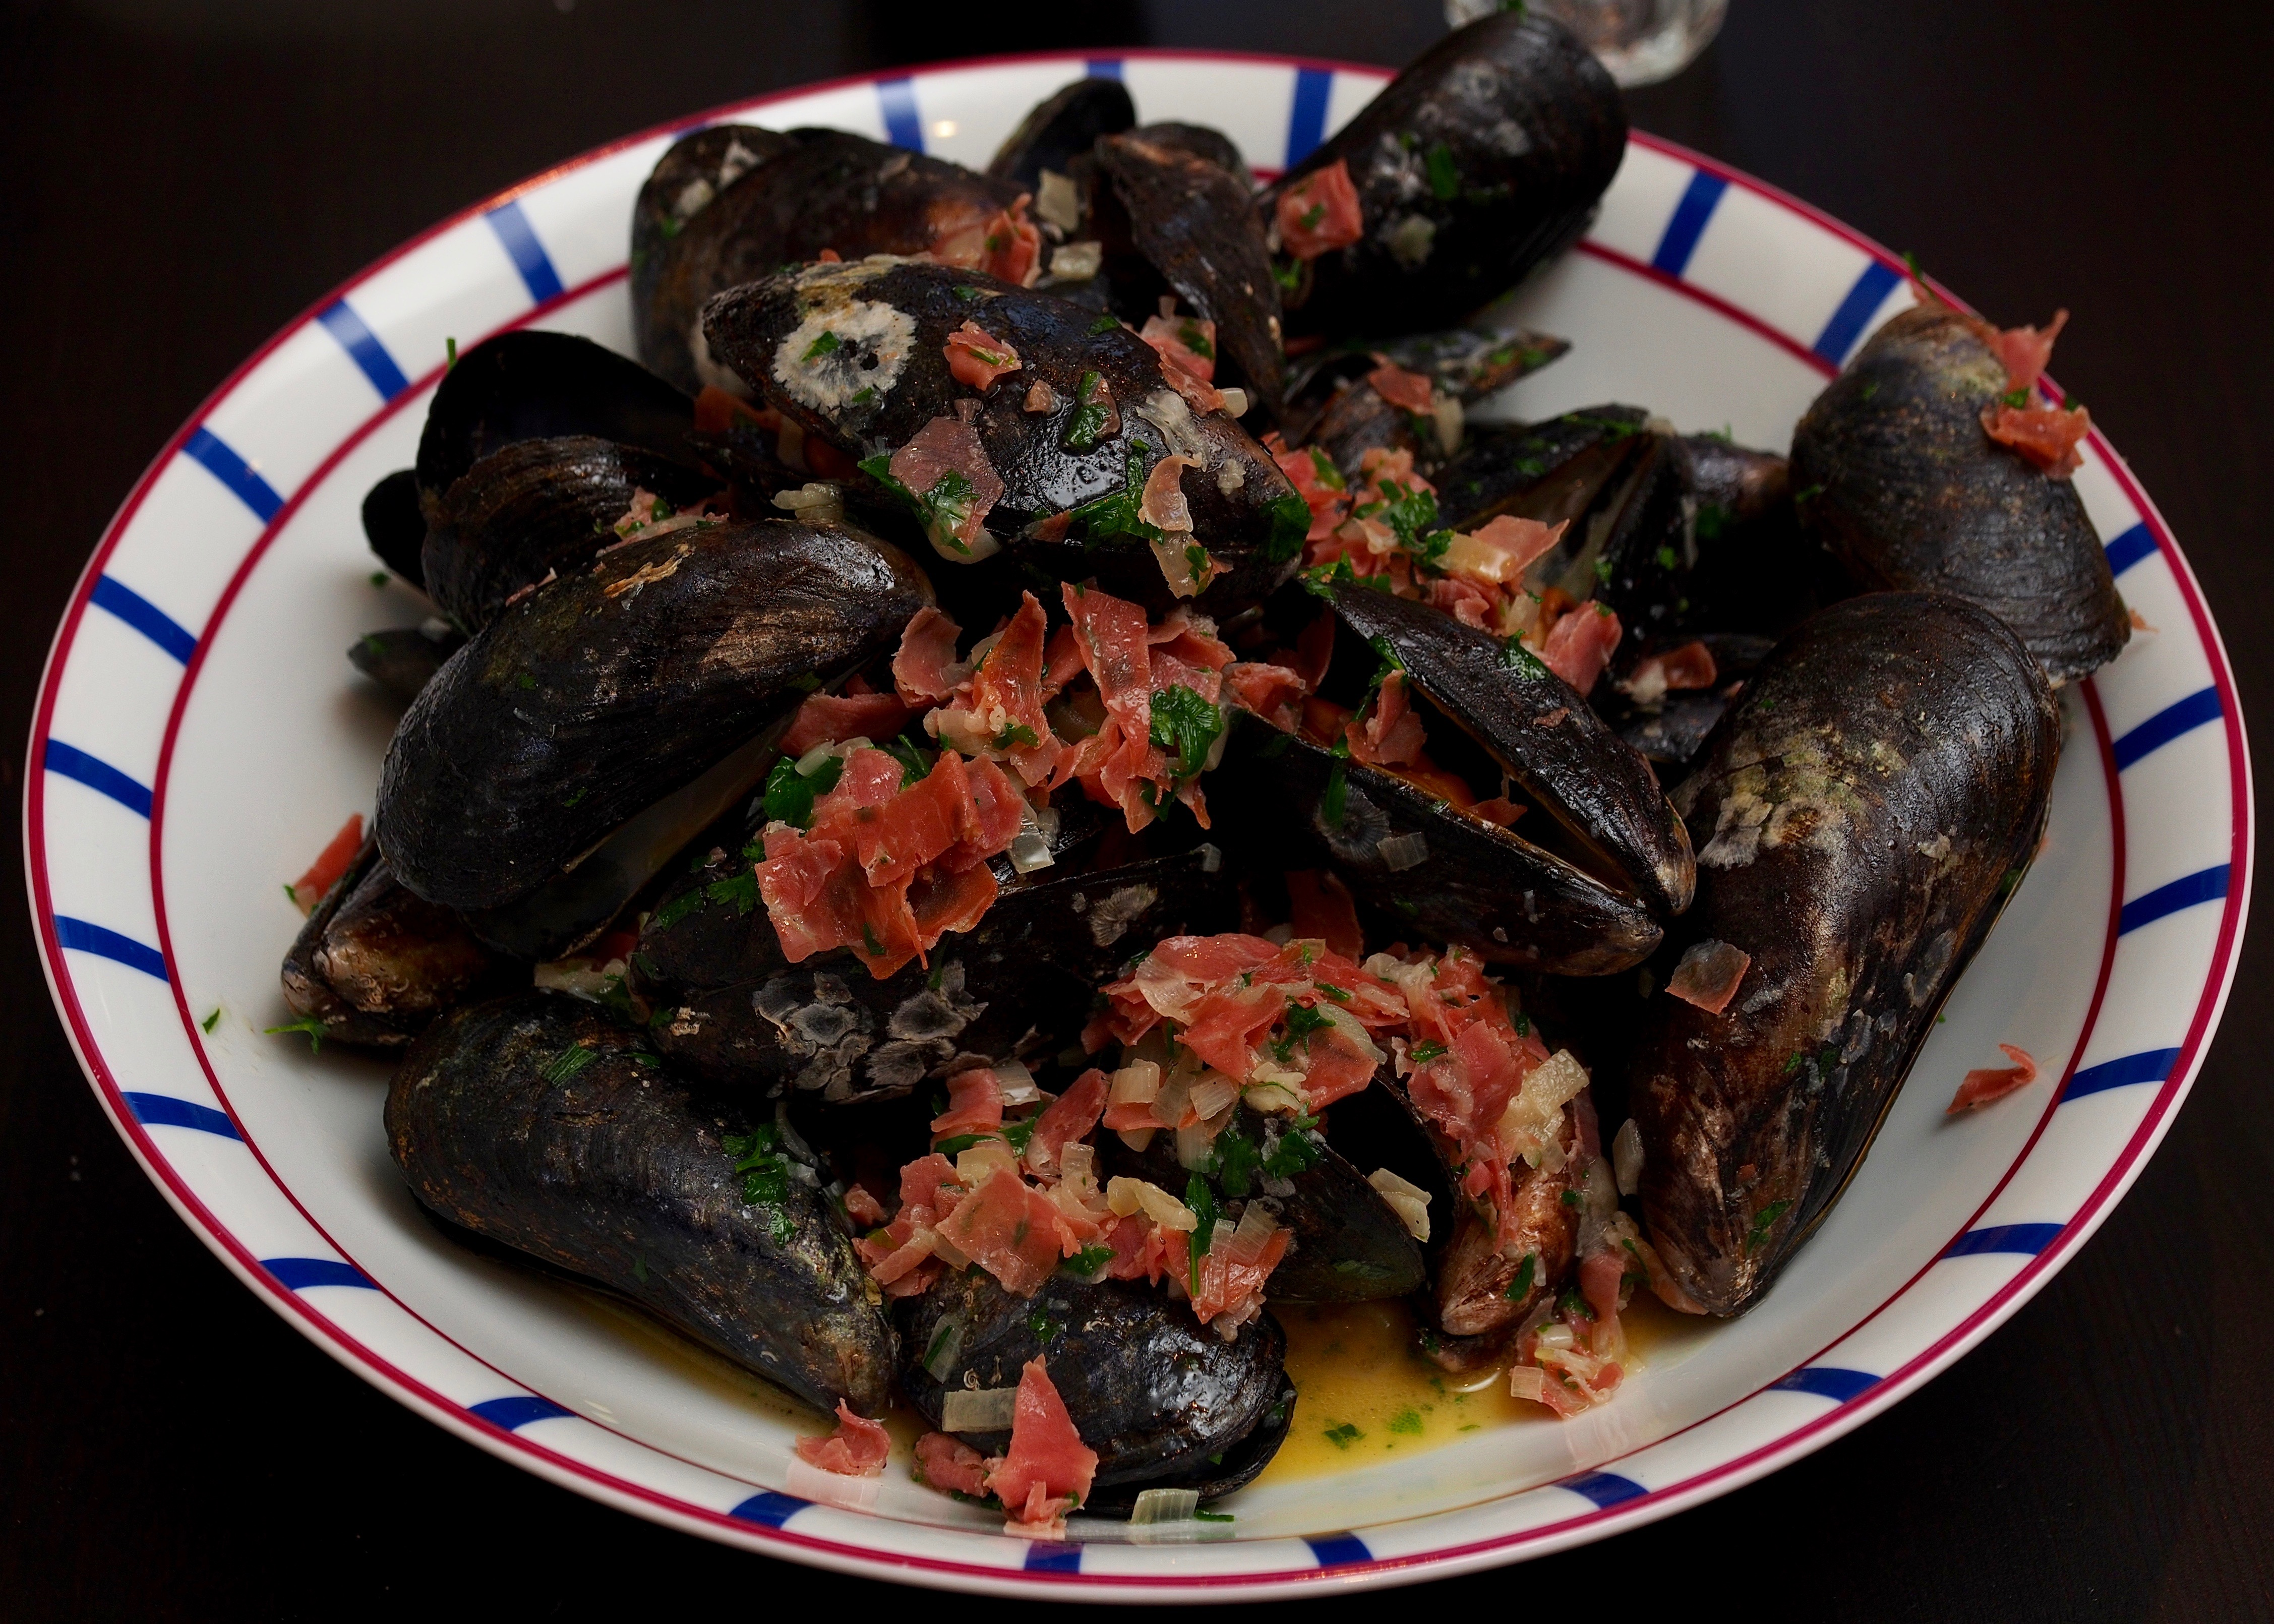 Mussels with Parma ham